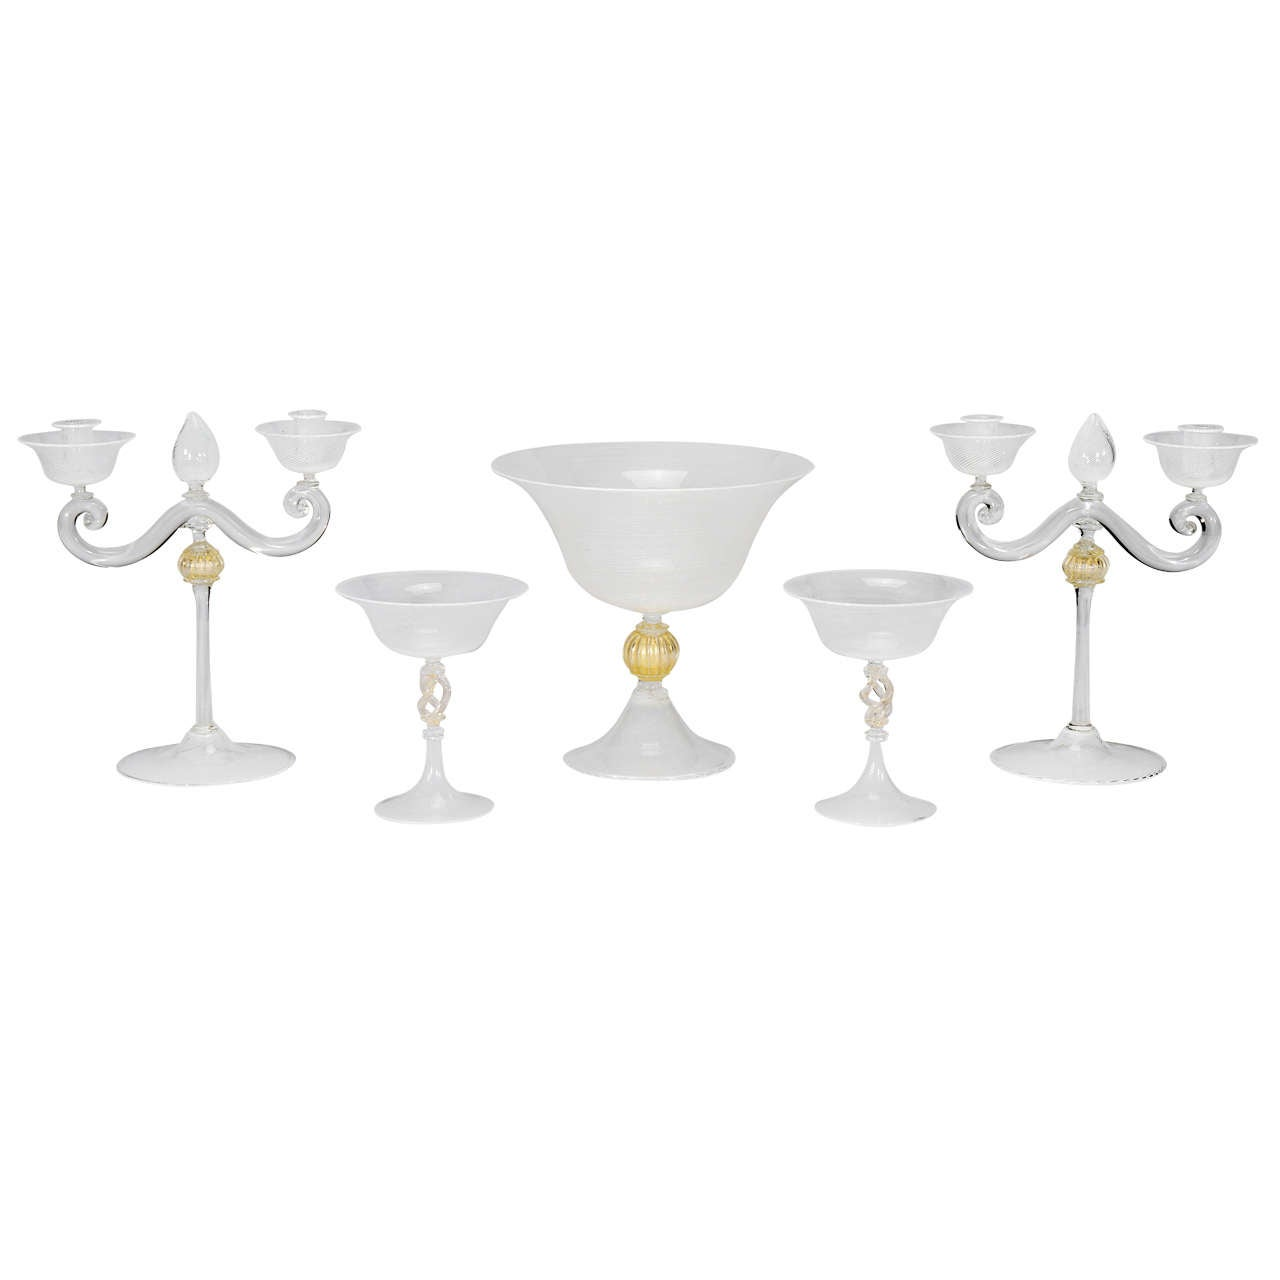 Cenedese, Murano 5 Piece Table Centerpiece Set with White Threading